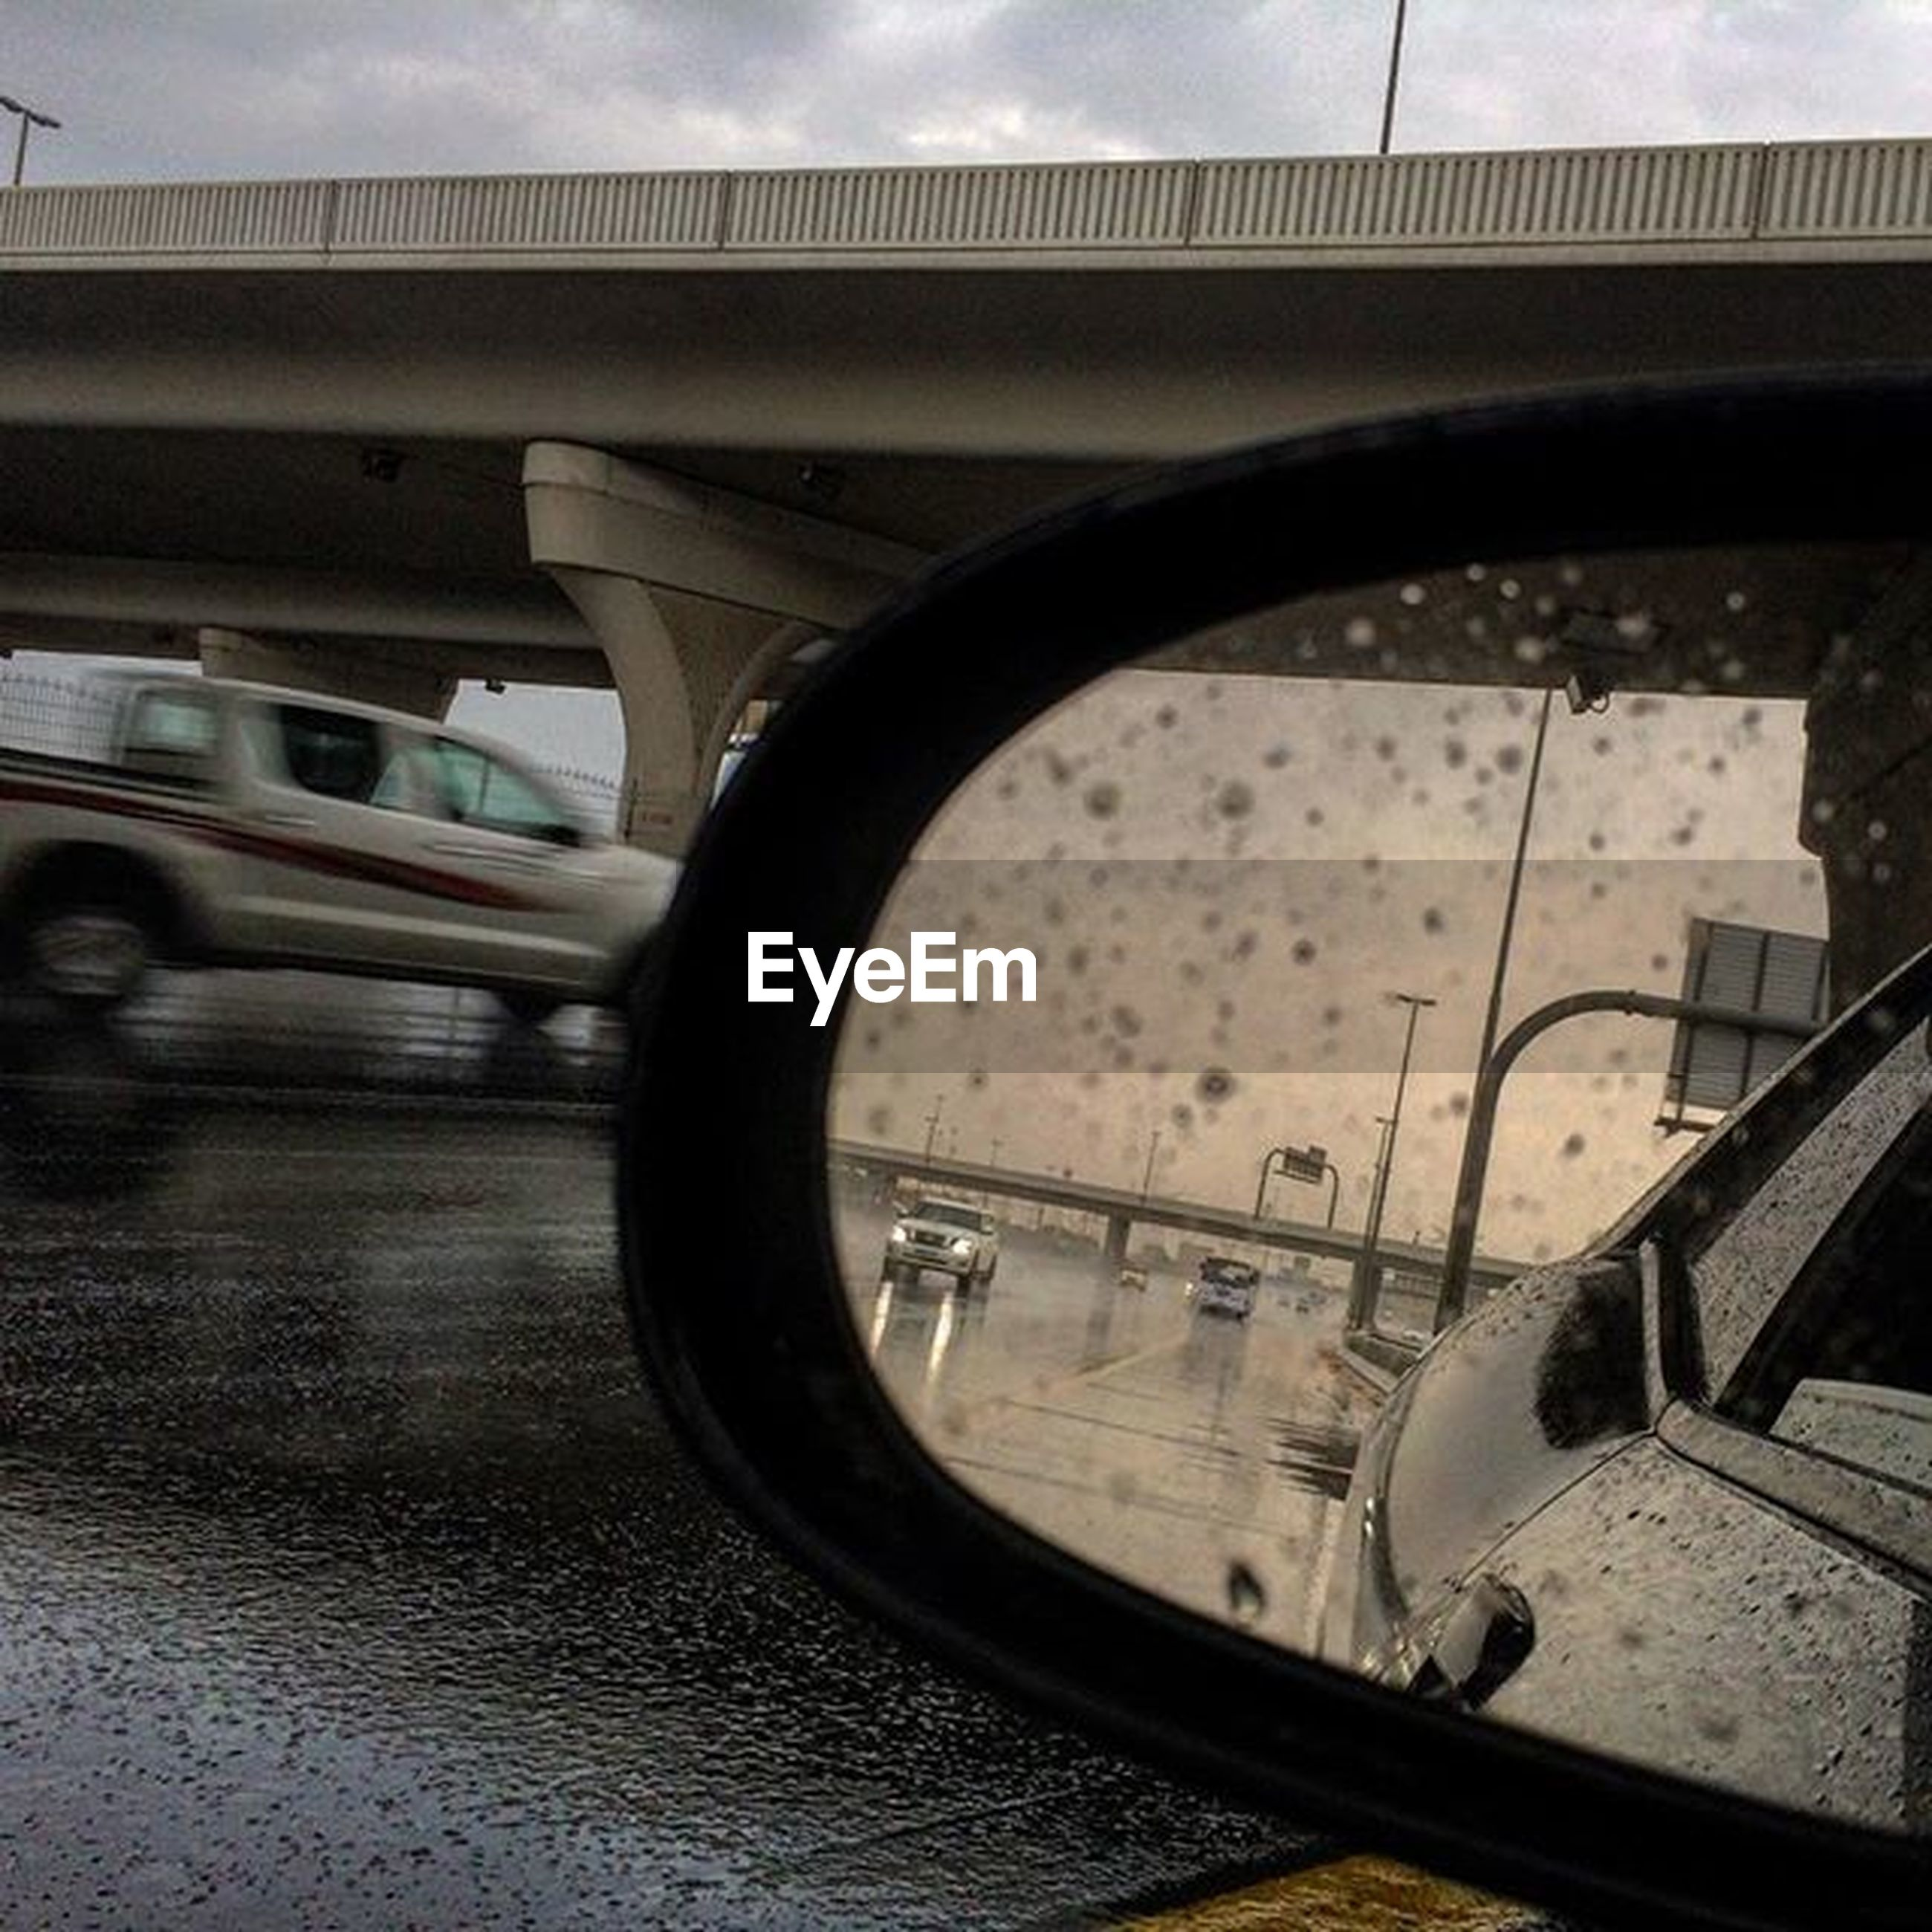 transportation, mode of transport, land vehicle, car, reflection, water, side-view mirror, part of, vehicle interior, close-up, glass - material, wet, cropped, road, sky, travel, street, transparent, season, vehicle part